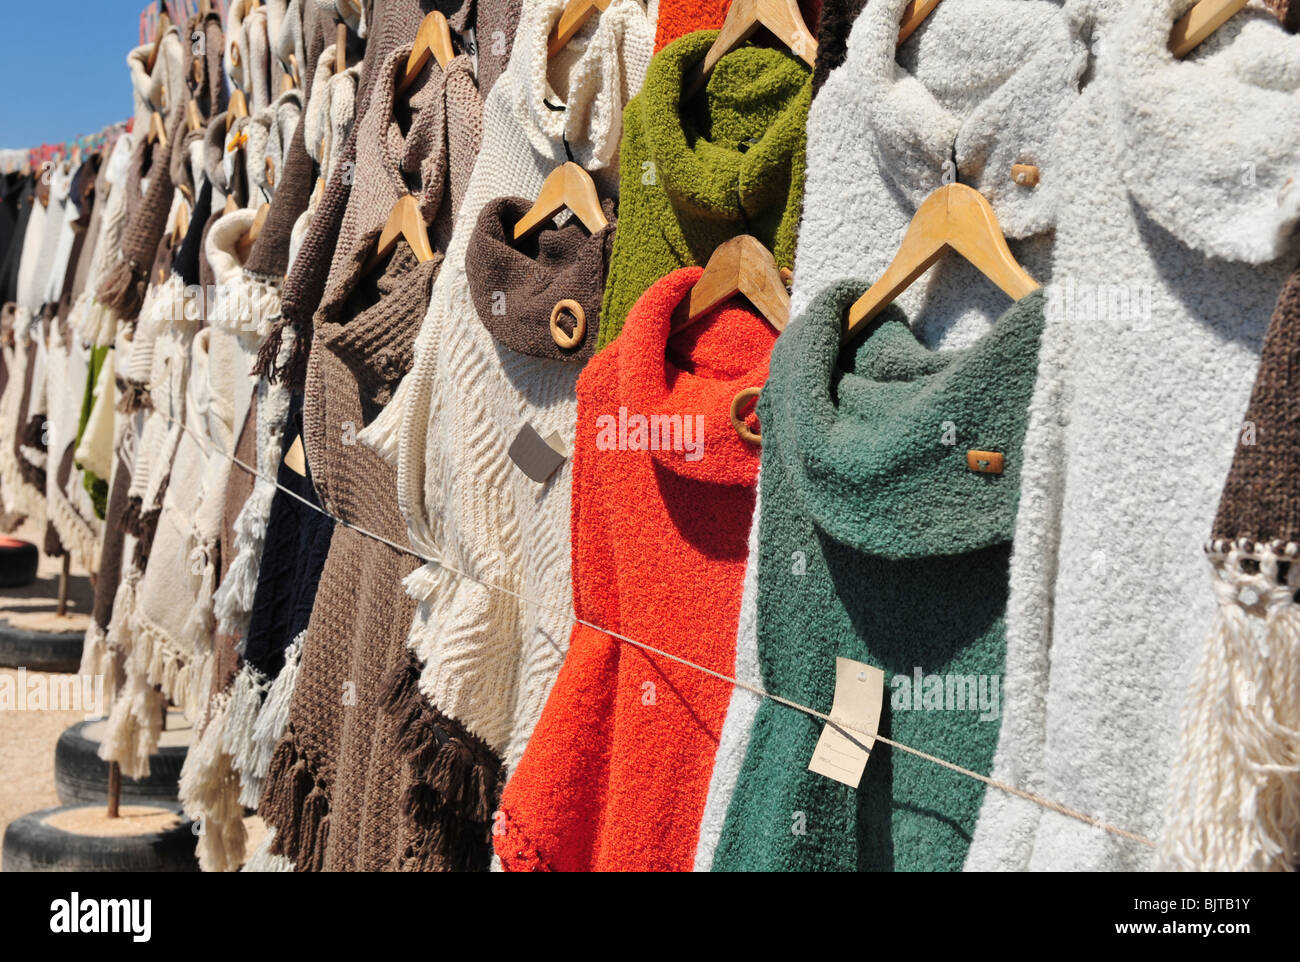 Poncho's and knitted garments for sale at a street market in Portugal, Algarve. Image taken at the stalls set - Stock Image